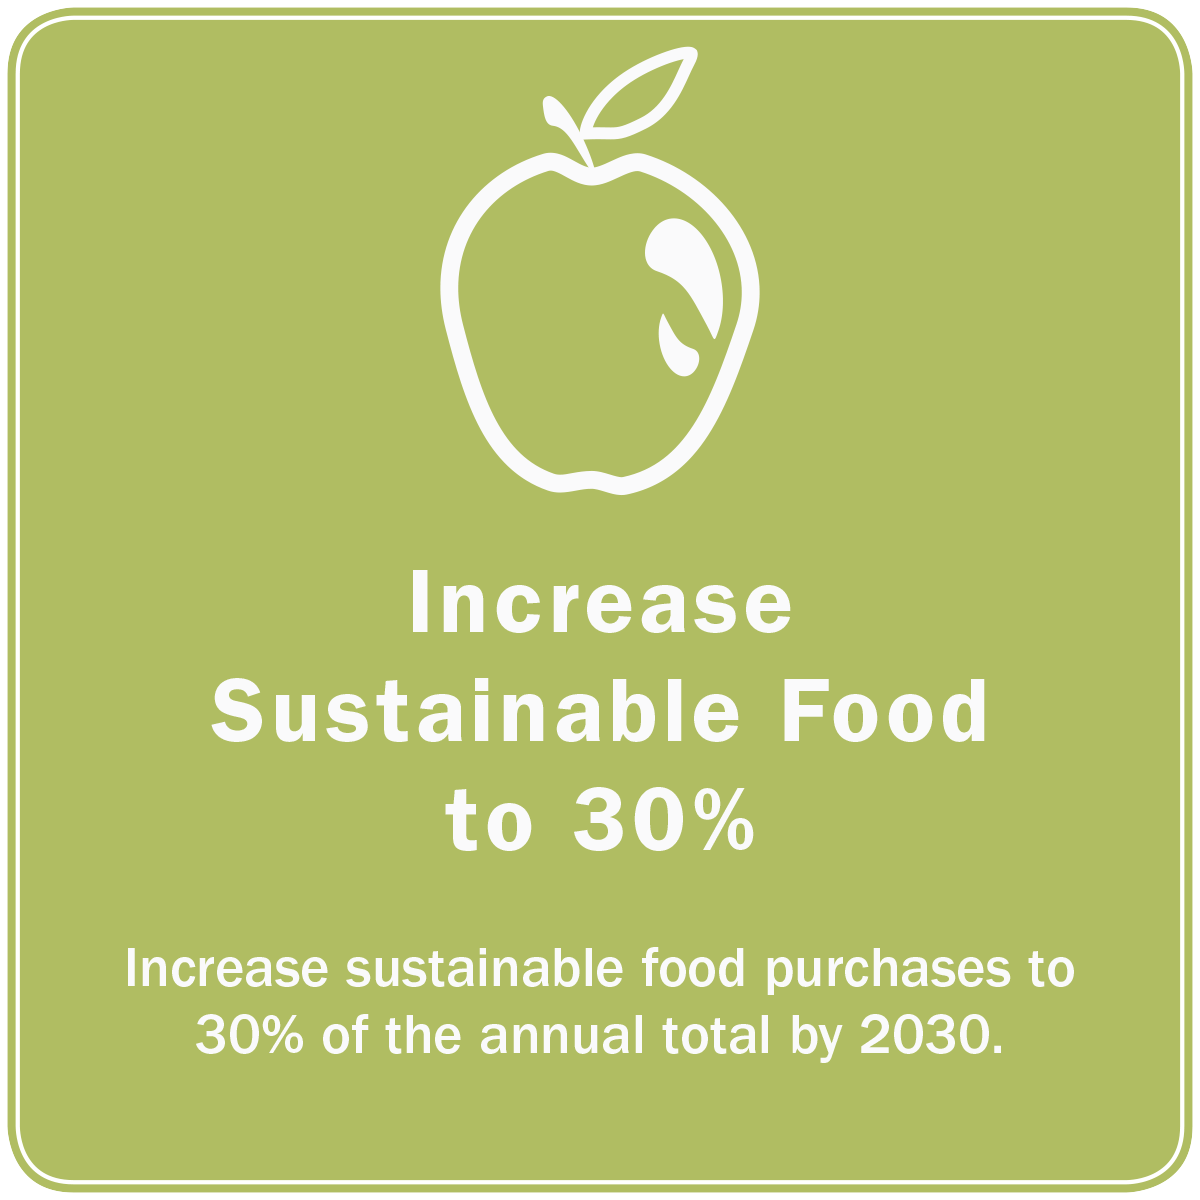 As part of the #30For30 goals, UVA has committed to increase sustainable food purchases to 30% of the annual total by 2020 #10BoldGoals https://t.co/Cm0558wRRZ